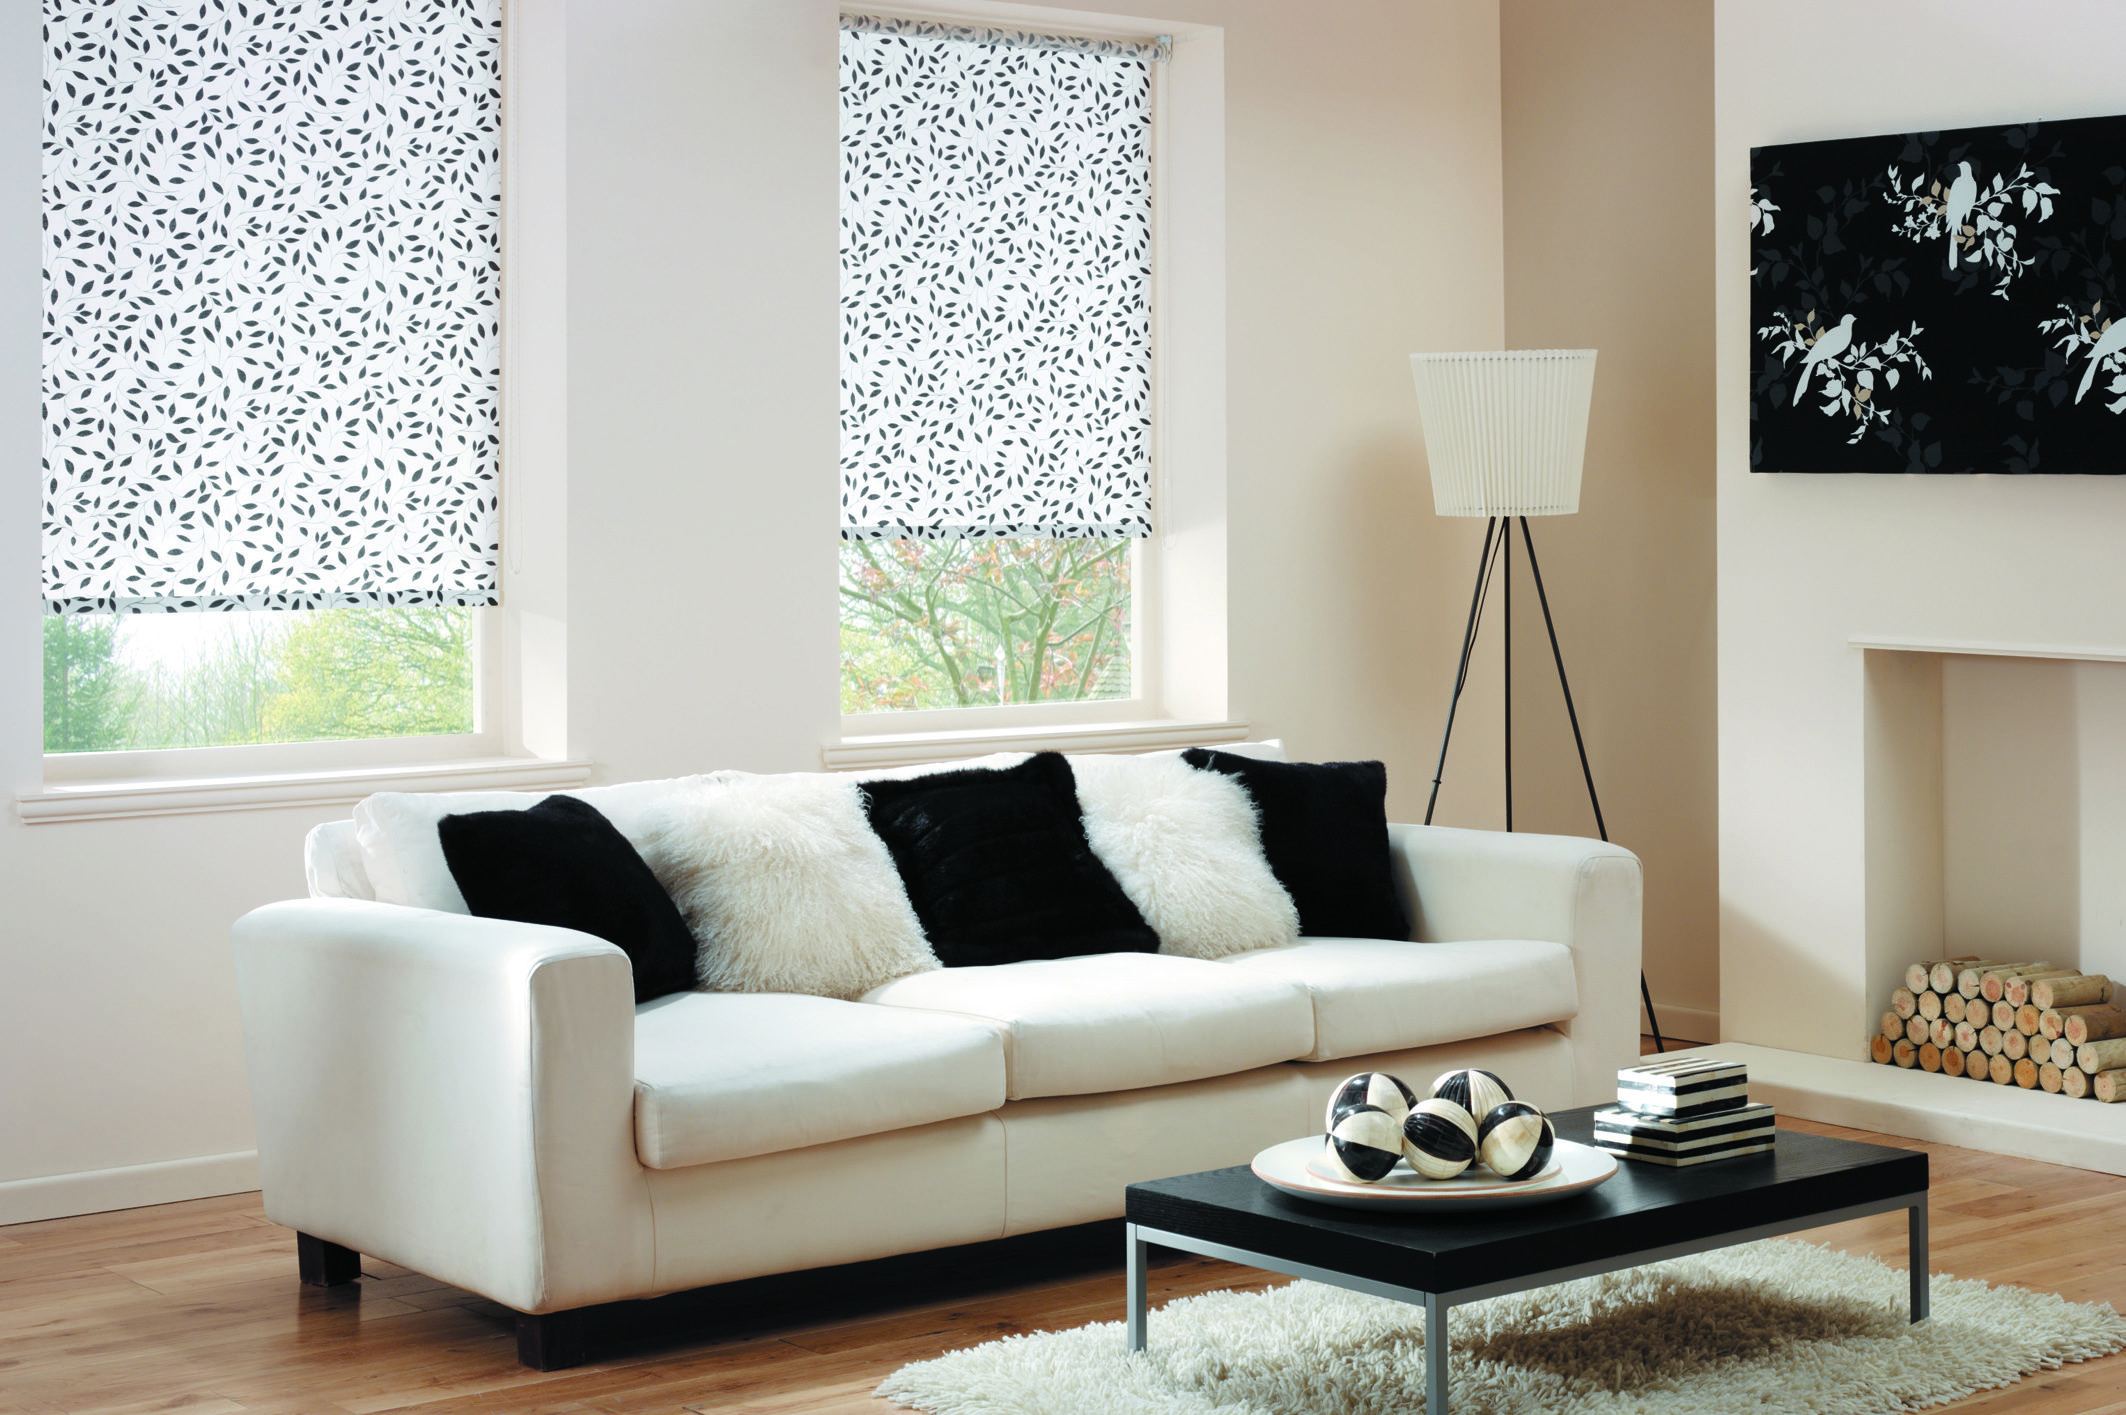 Living Room Blinds Roller Blinds Chatsworth Black Our Blinds And Shutters